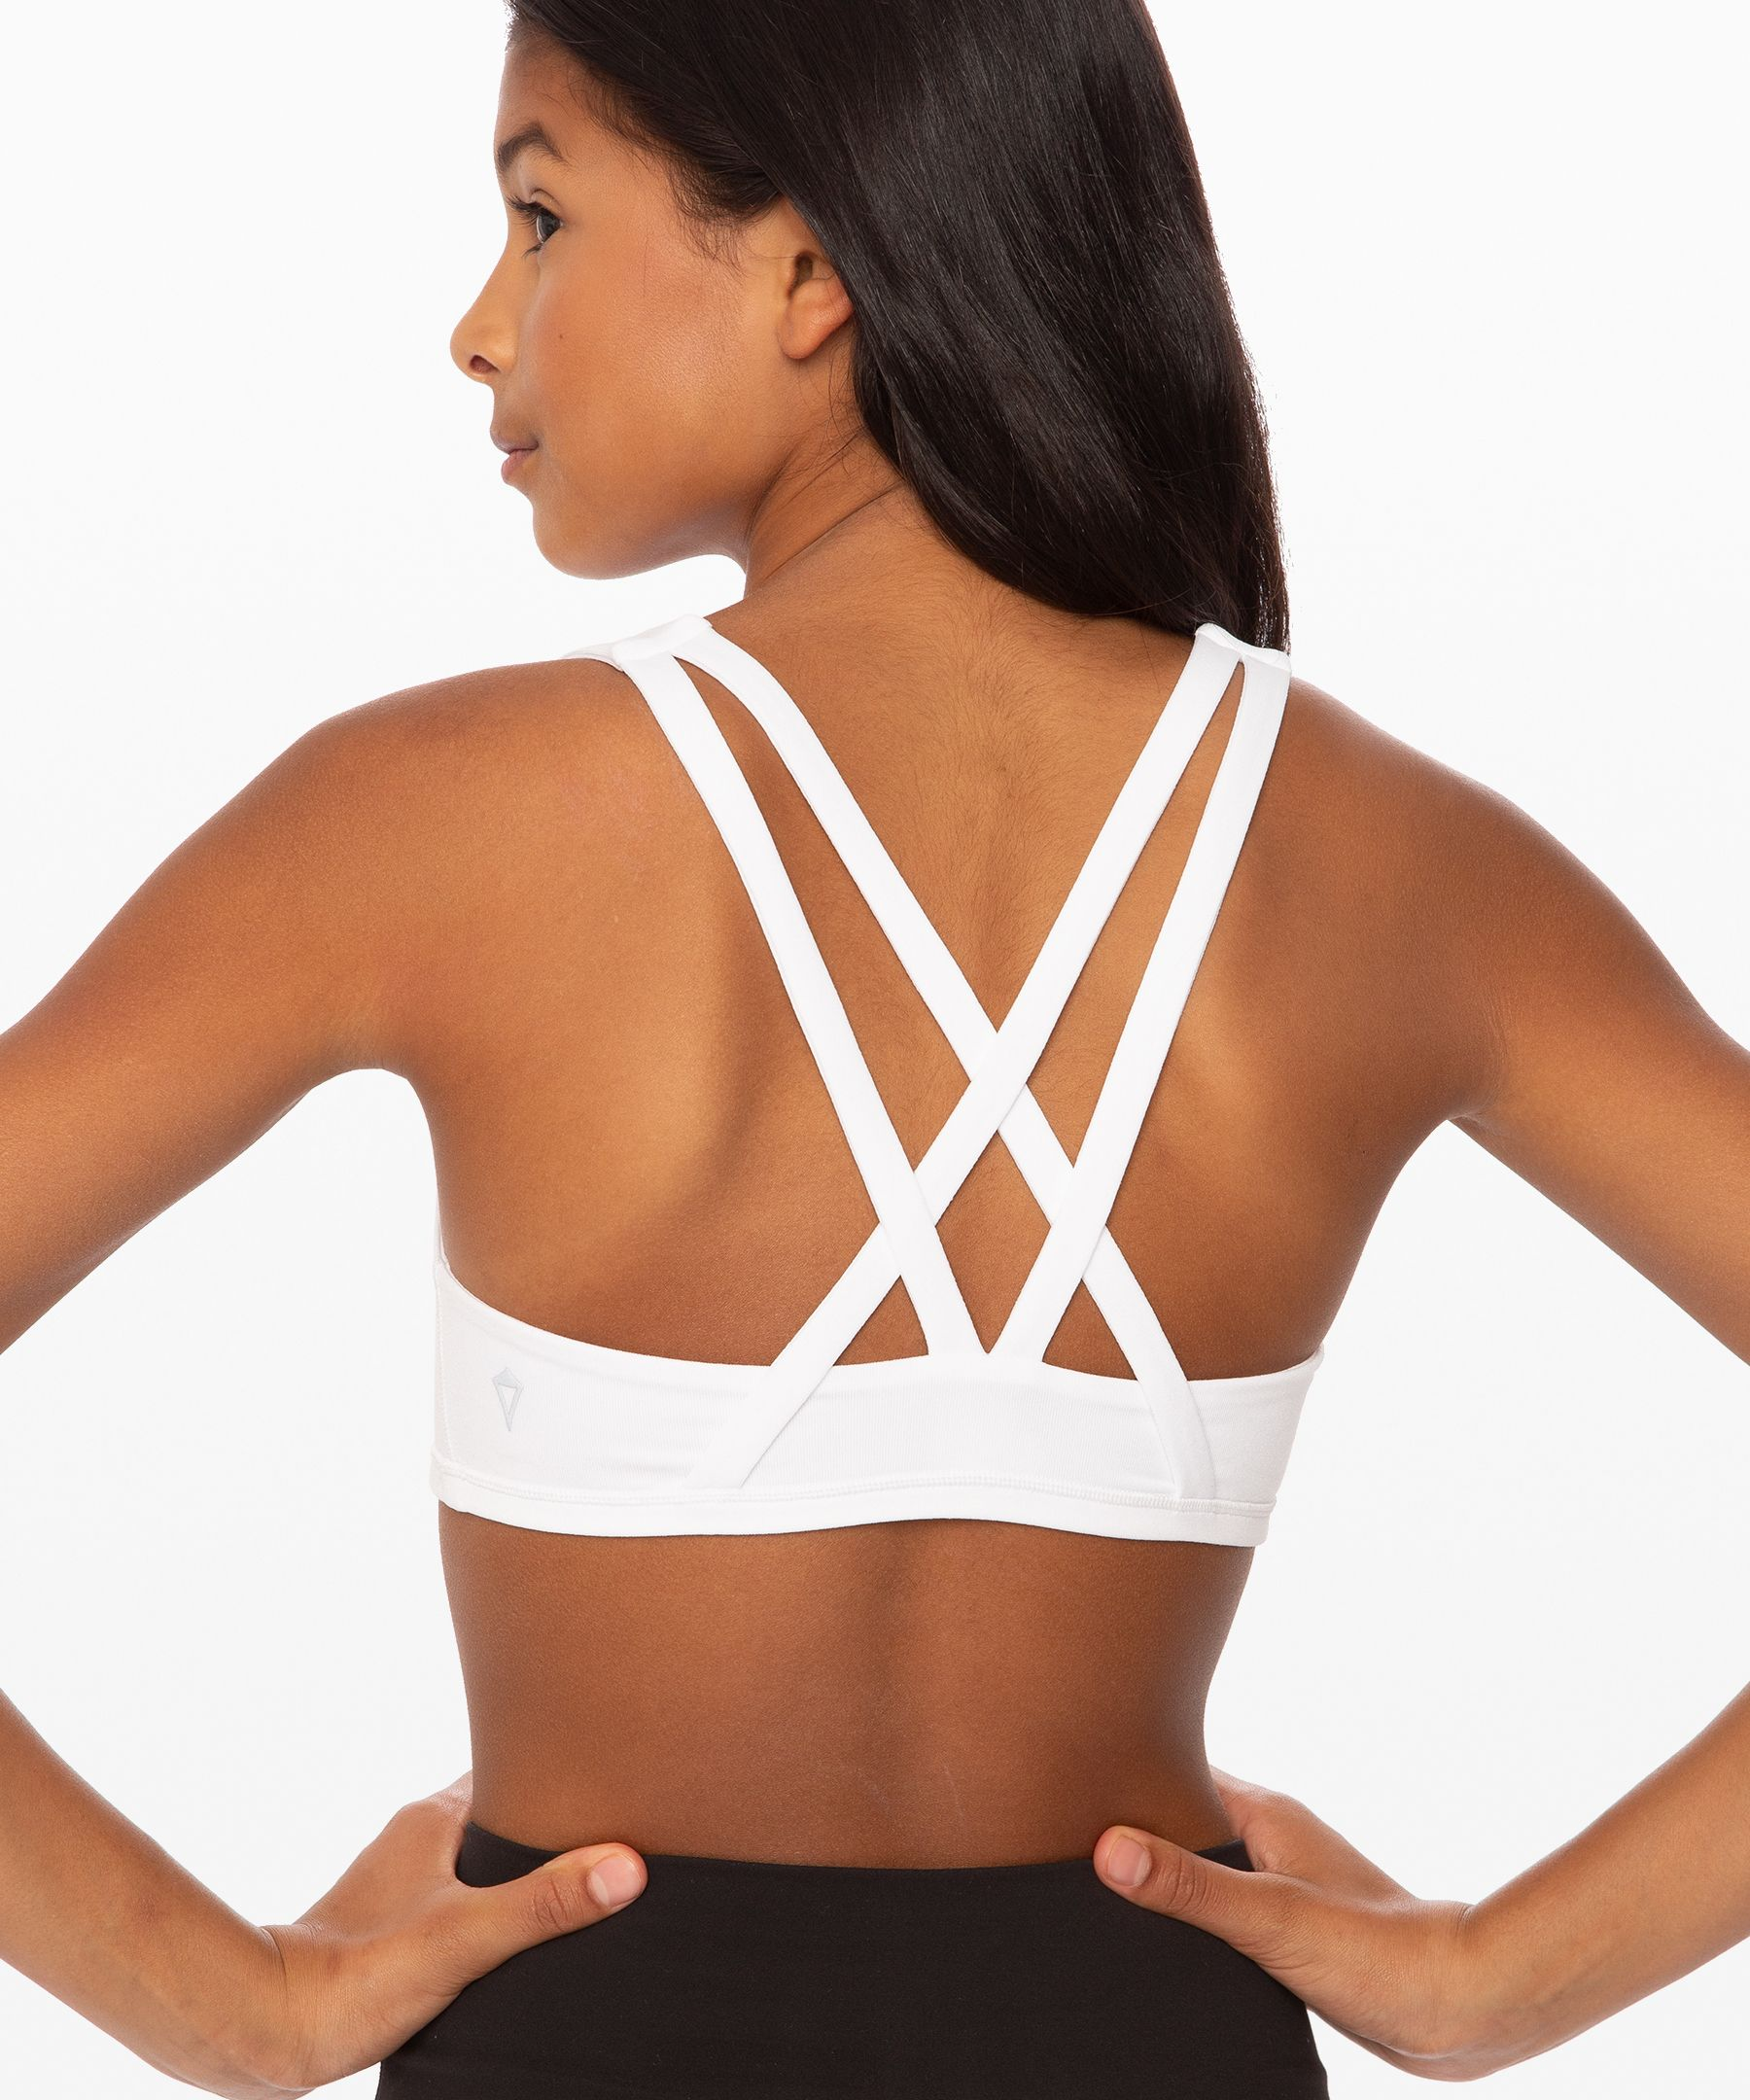 Minimize distractions and  conquer your goals in this  strappy reversible bra.